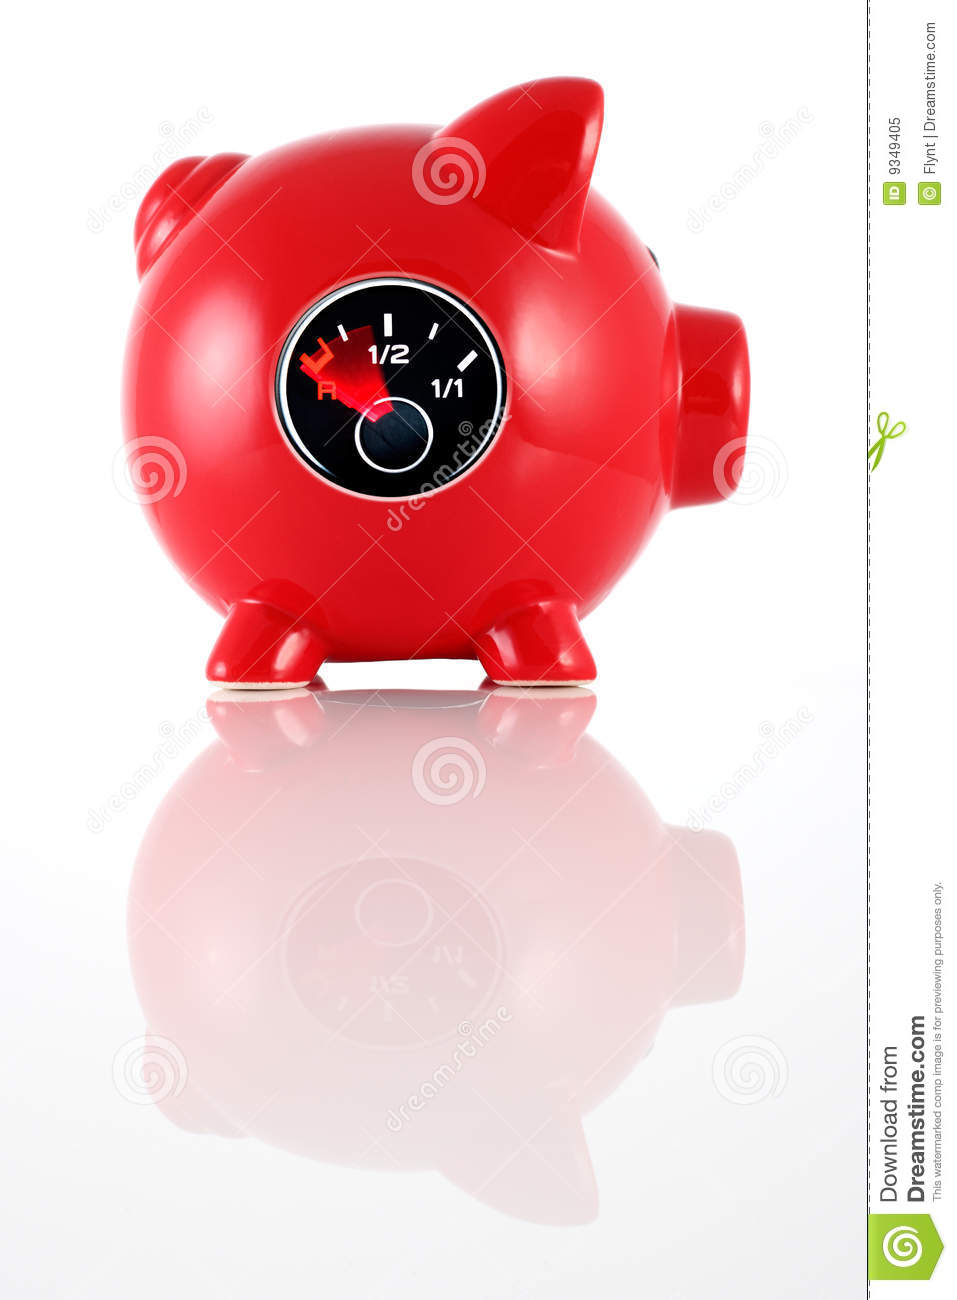 1 782 Account Bank Empty Photos Free Royalty Free Stock Photos From Dreamstime